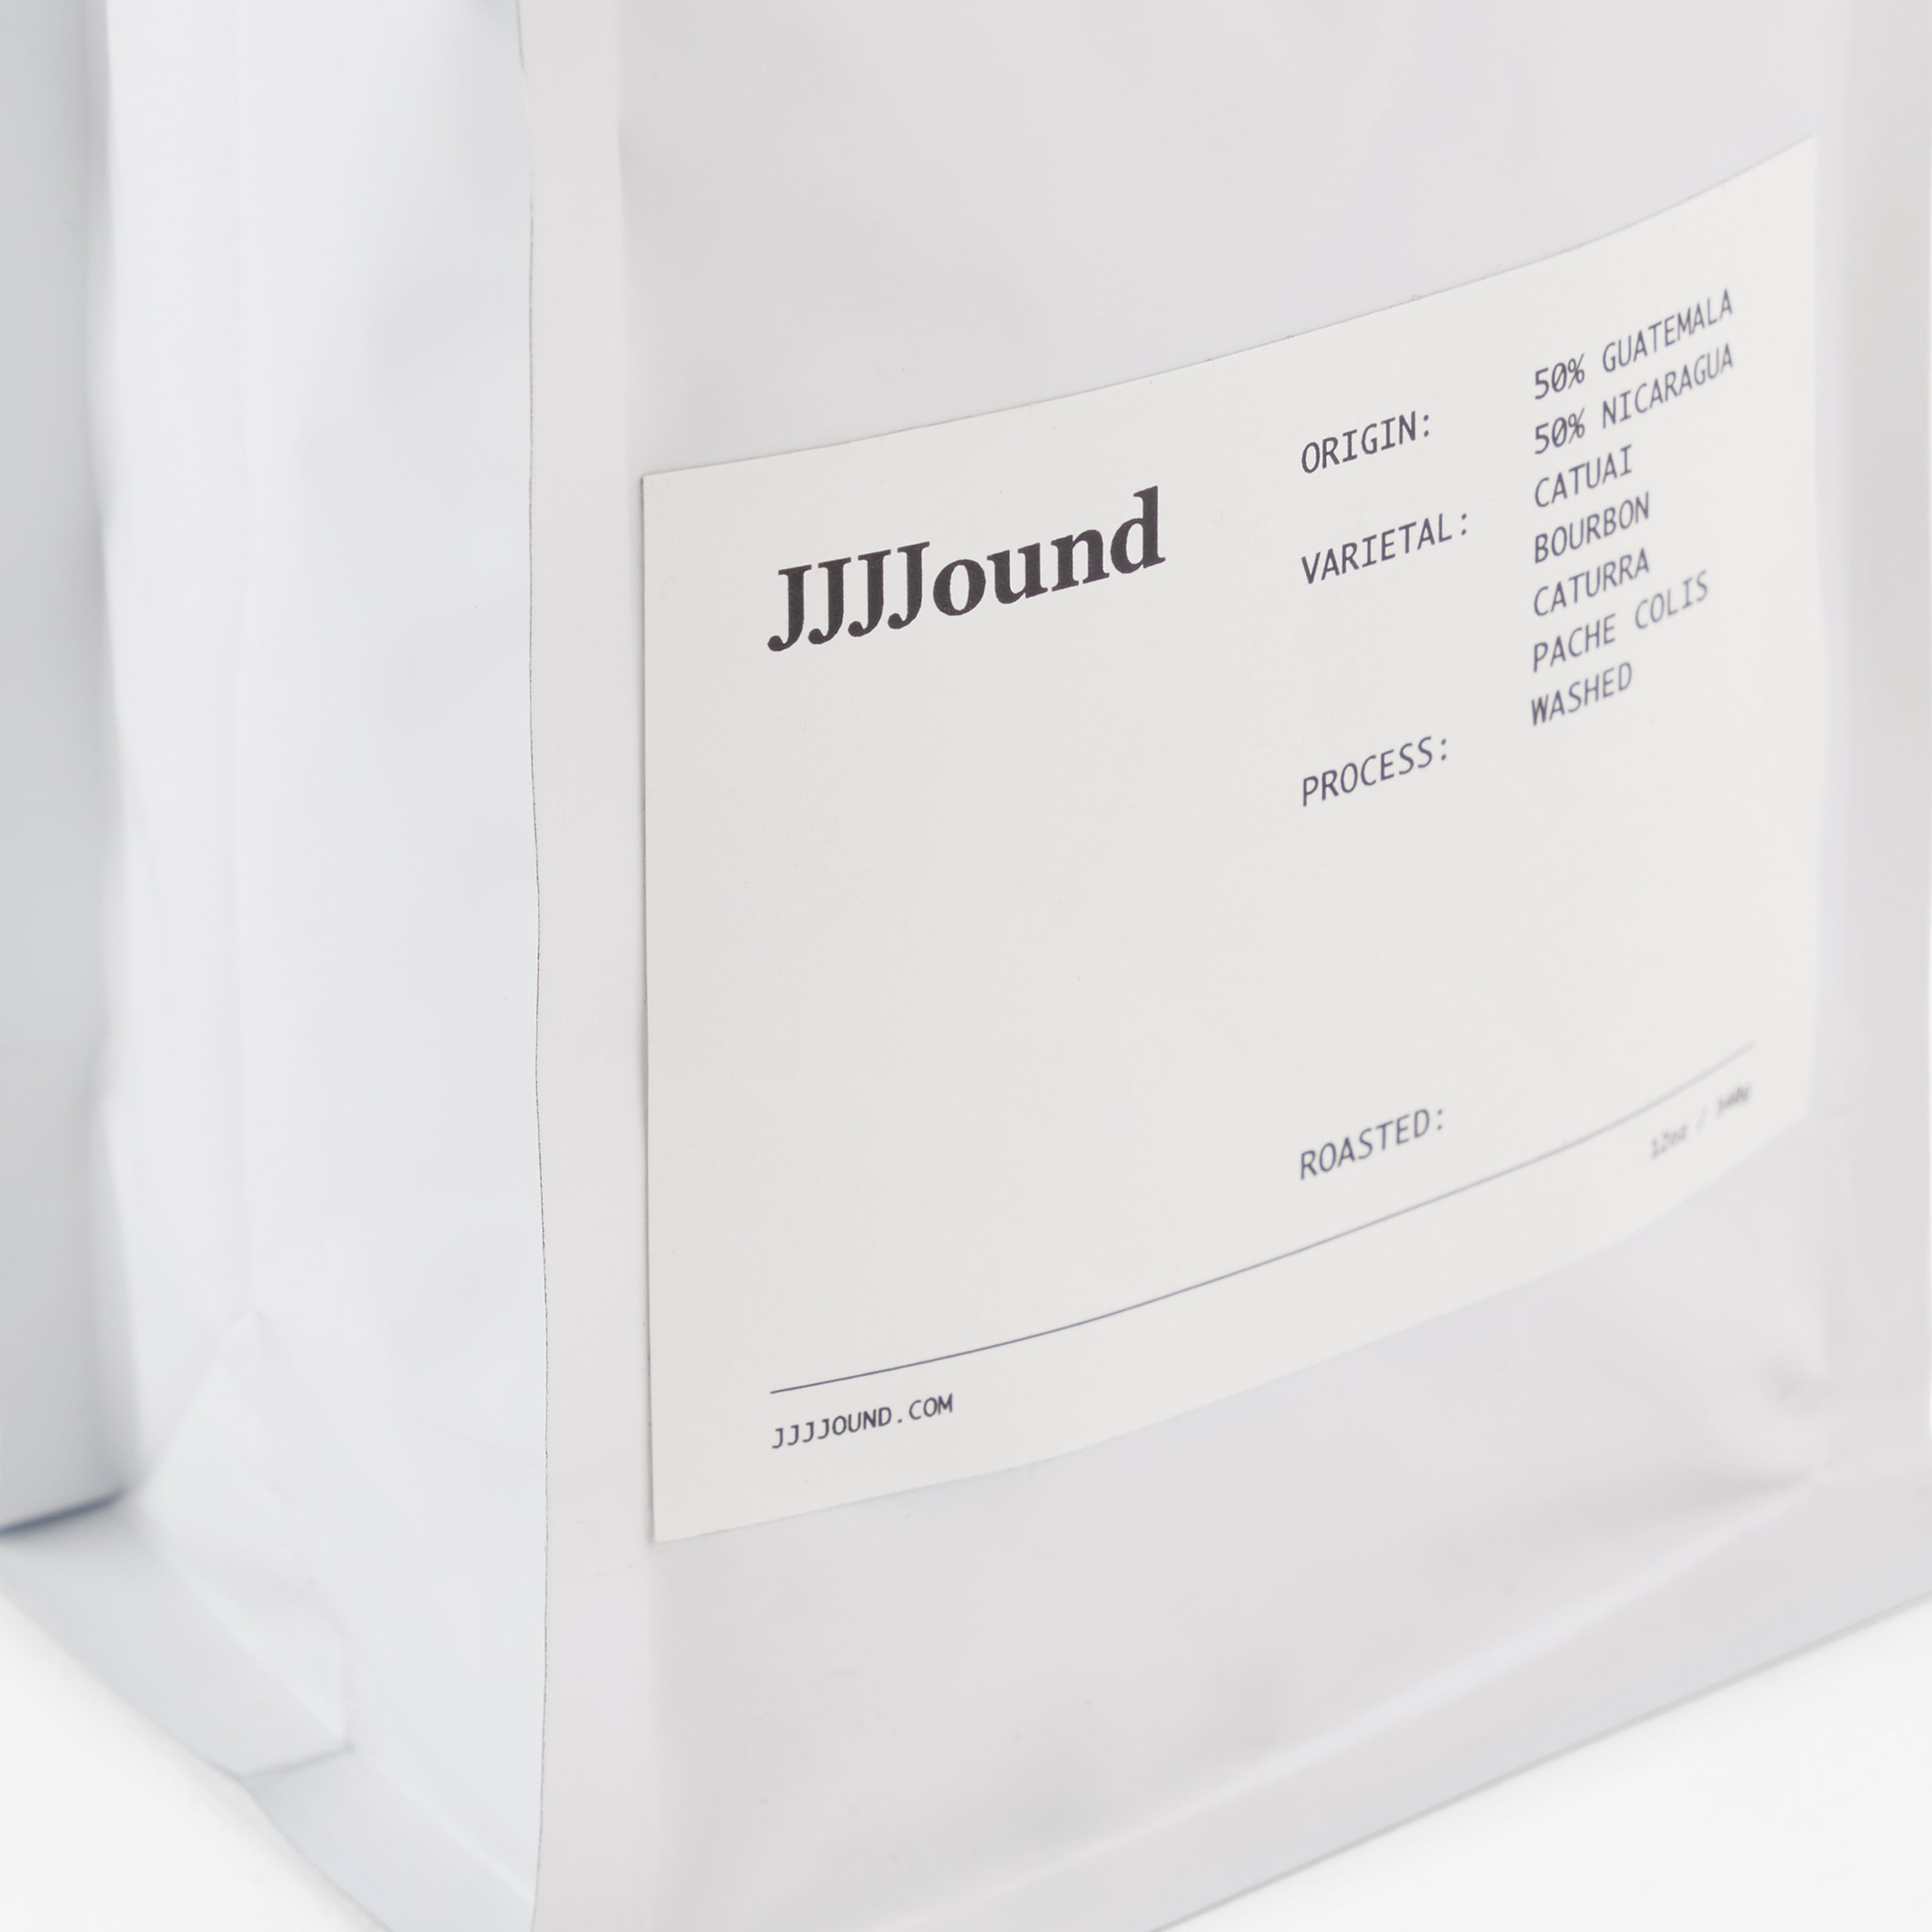 JJJJound Coffee (Nova Scotia roast)